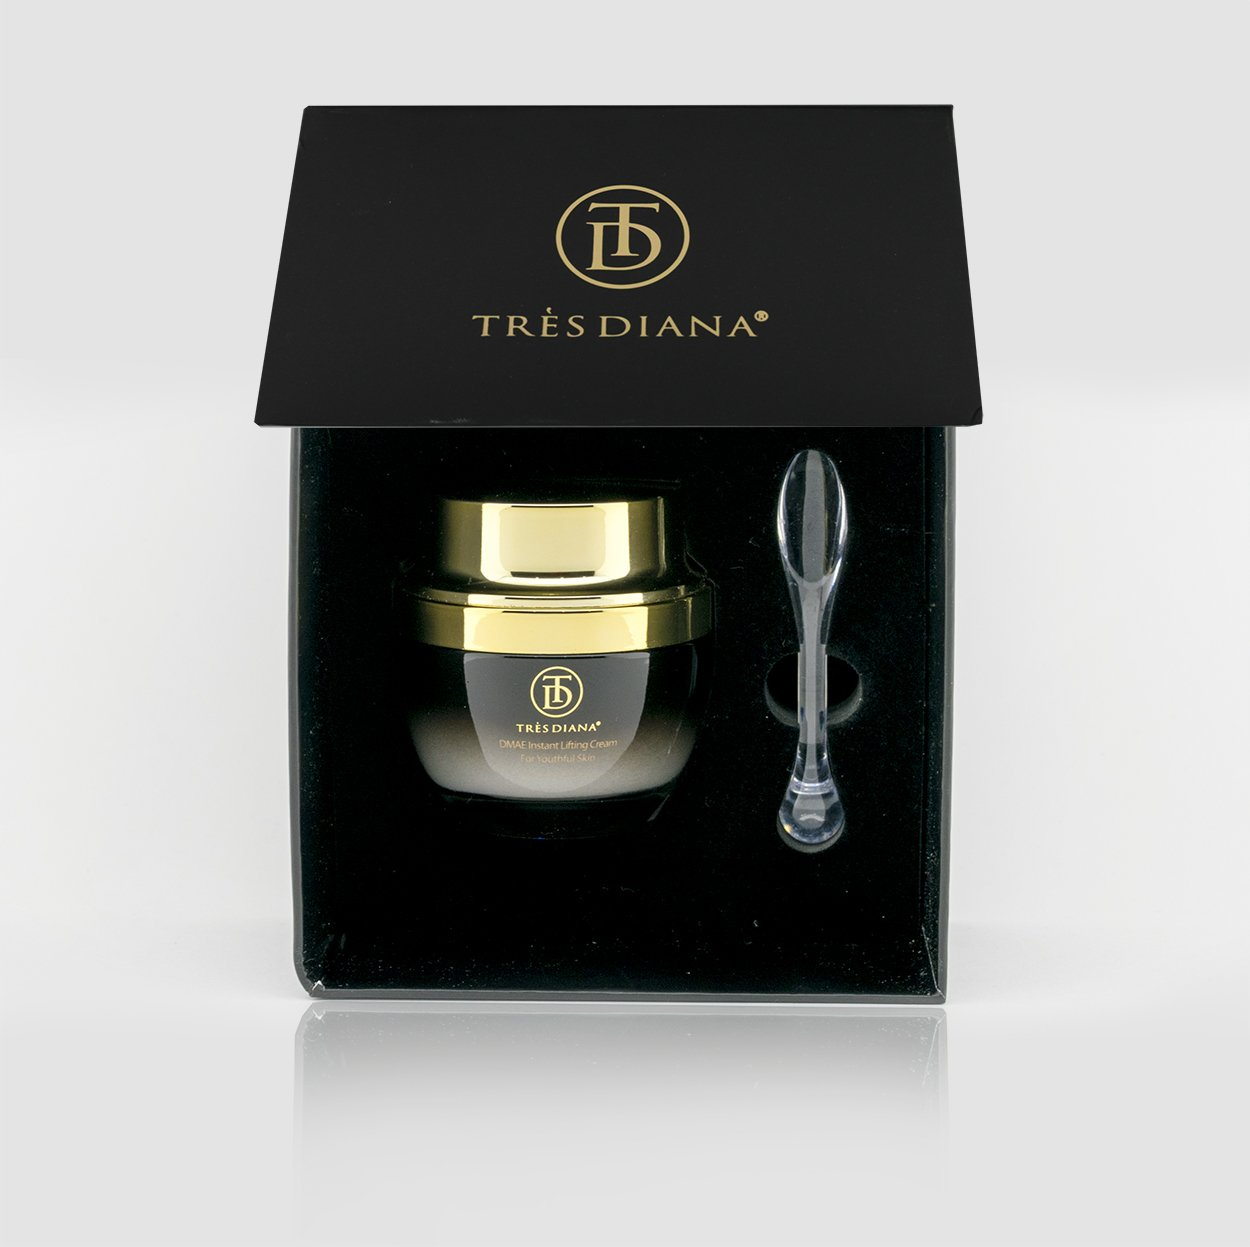 TRÈSDIANA DMAE Instant Lifting Cream - Premium Anti-Aging, Face and Neck, Moisturize, Perfect for Oily, Dry and Sensitive Skin, Natural Blend of Vitamin E, Caviar, Aloe, Green Tea Extract, 1.7 fl. oz